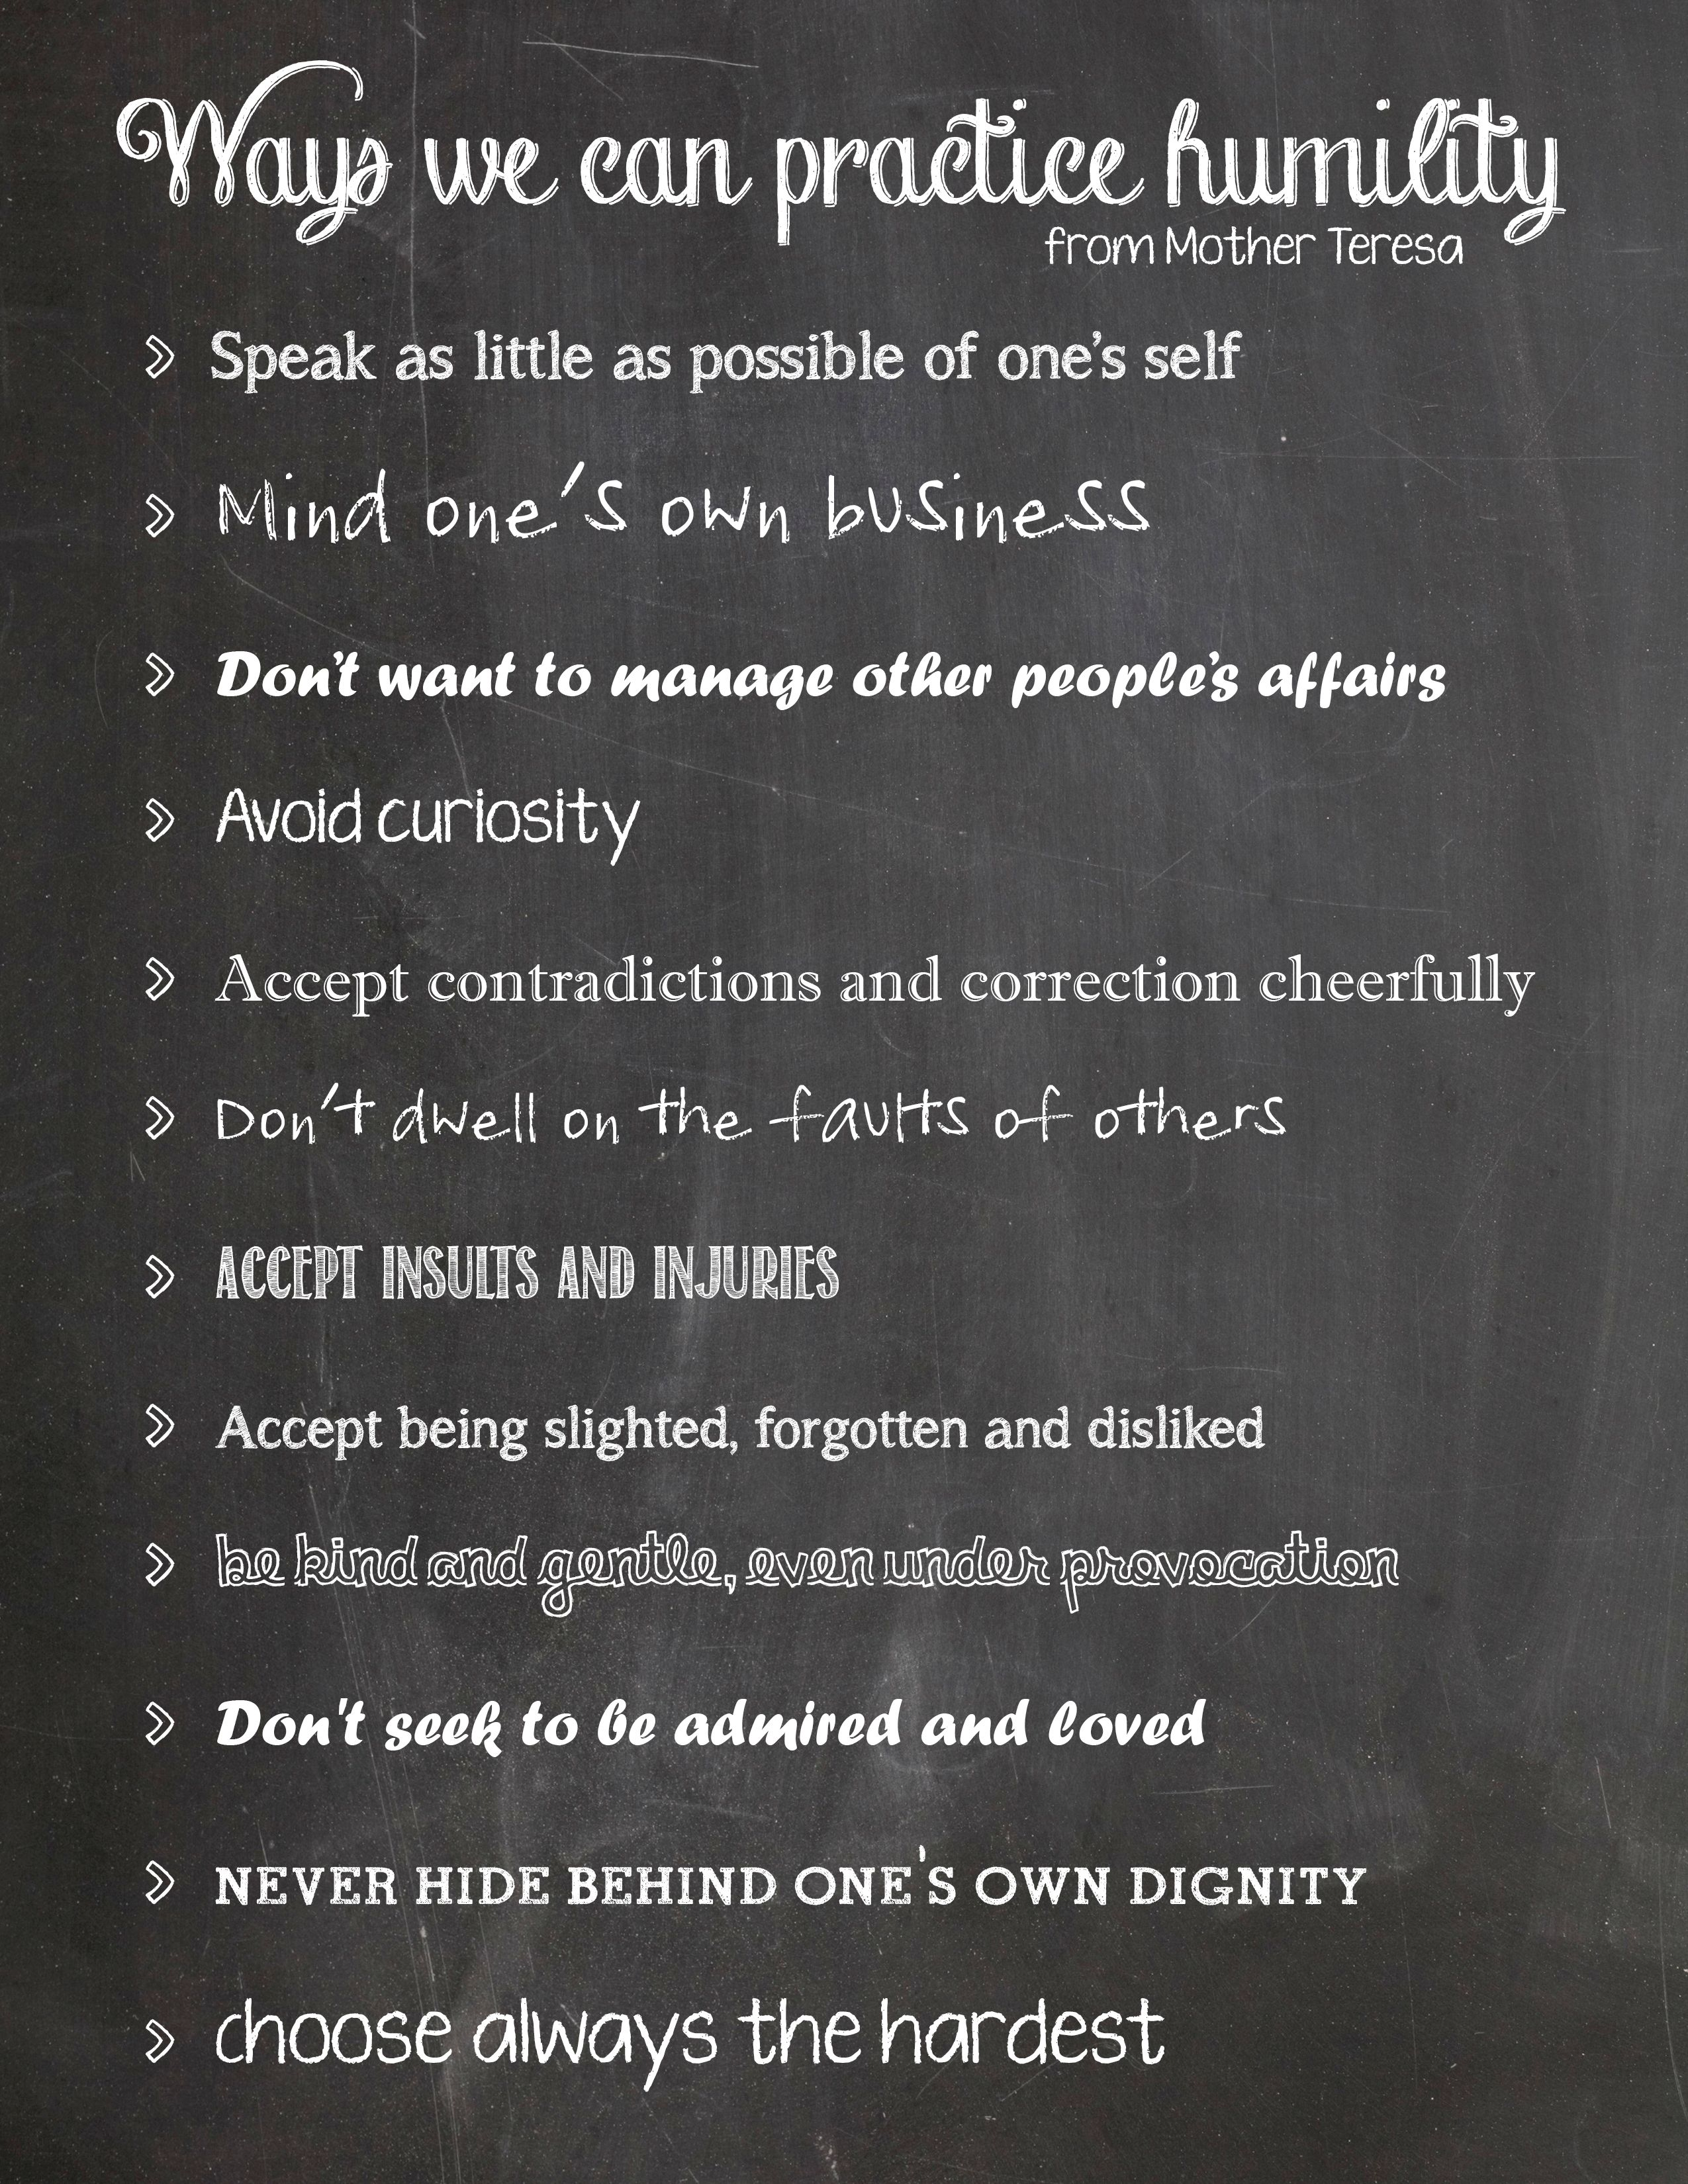 Free Printable Humility List From Mother Teresa